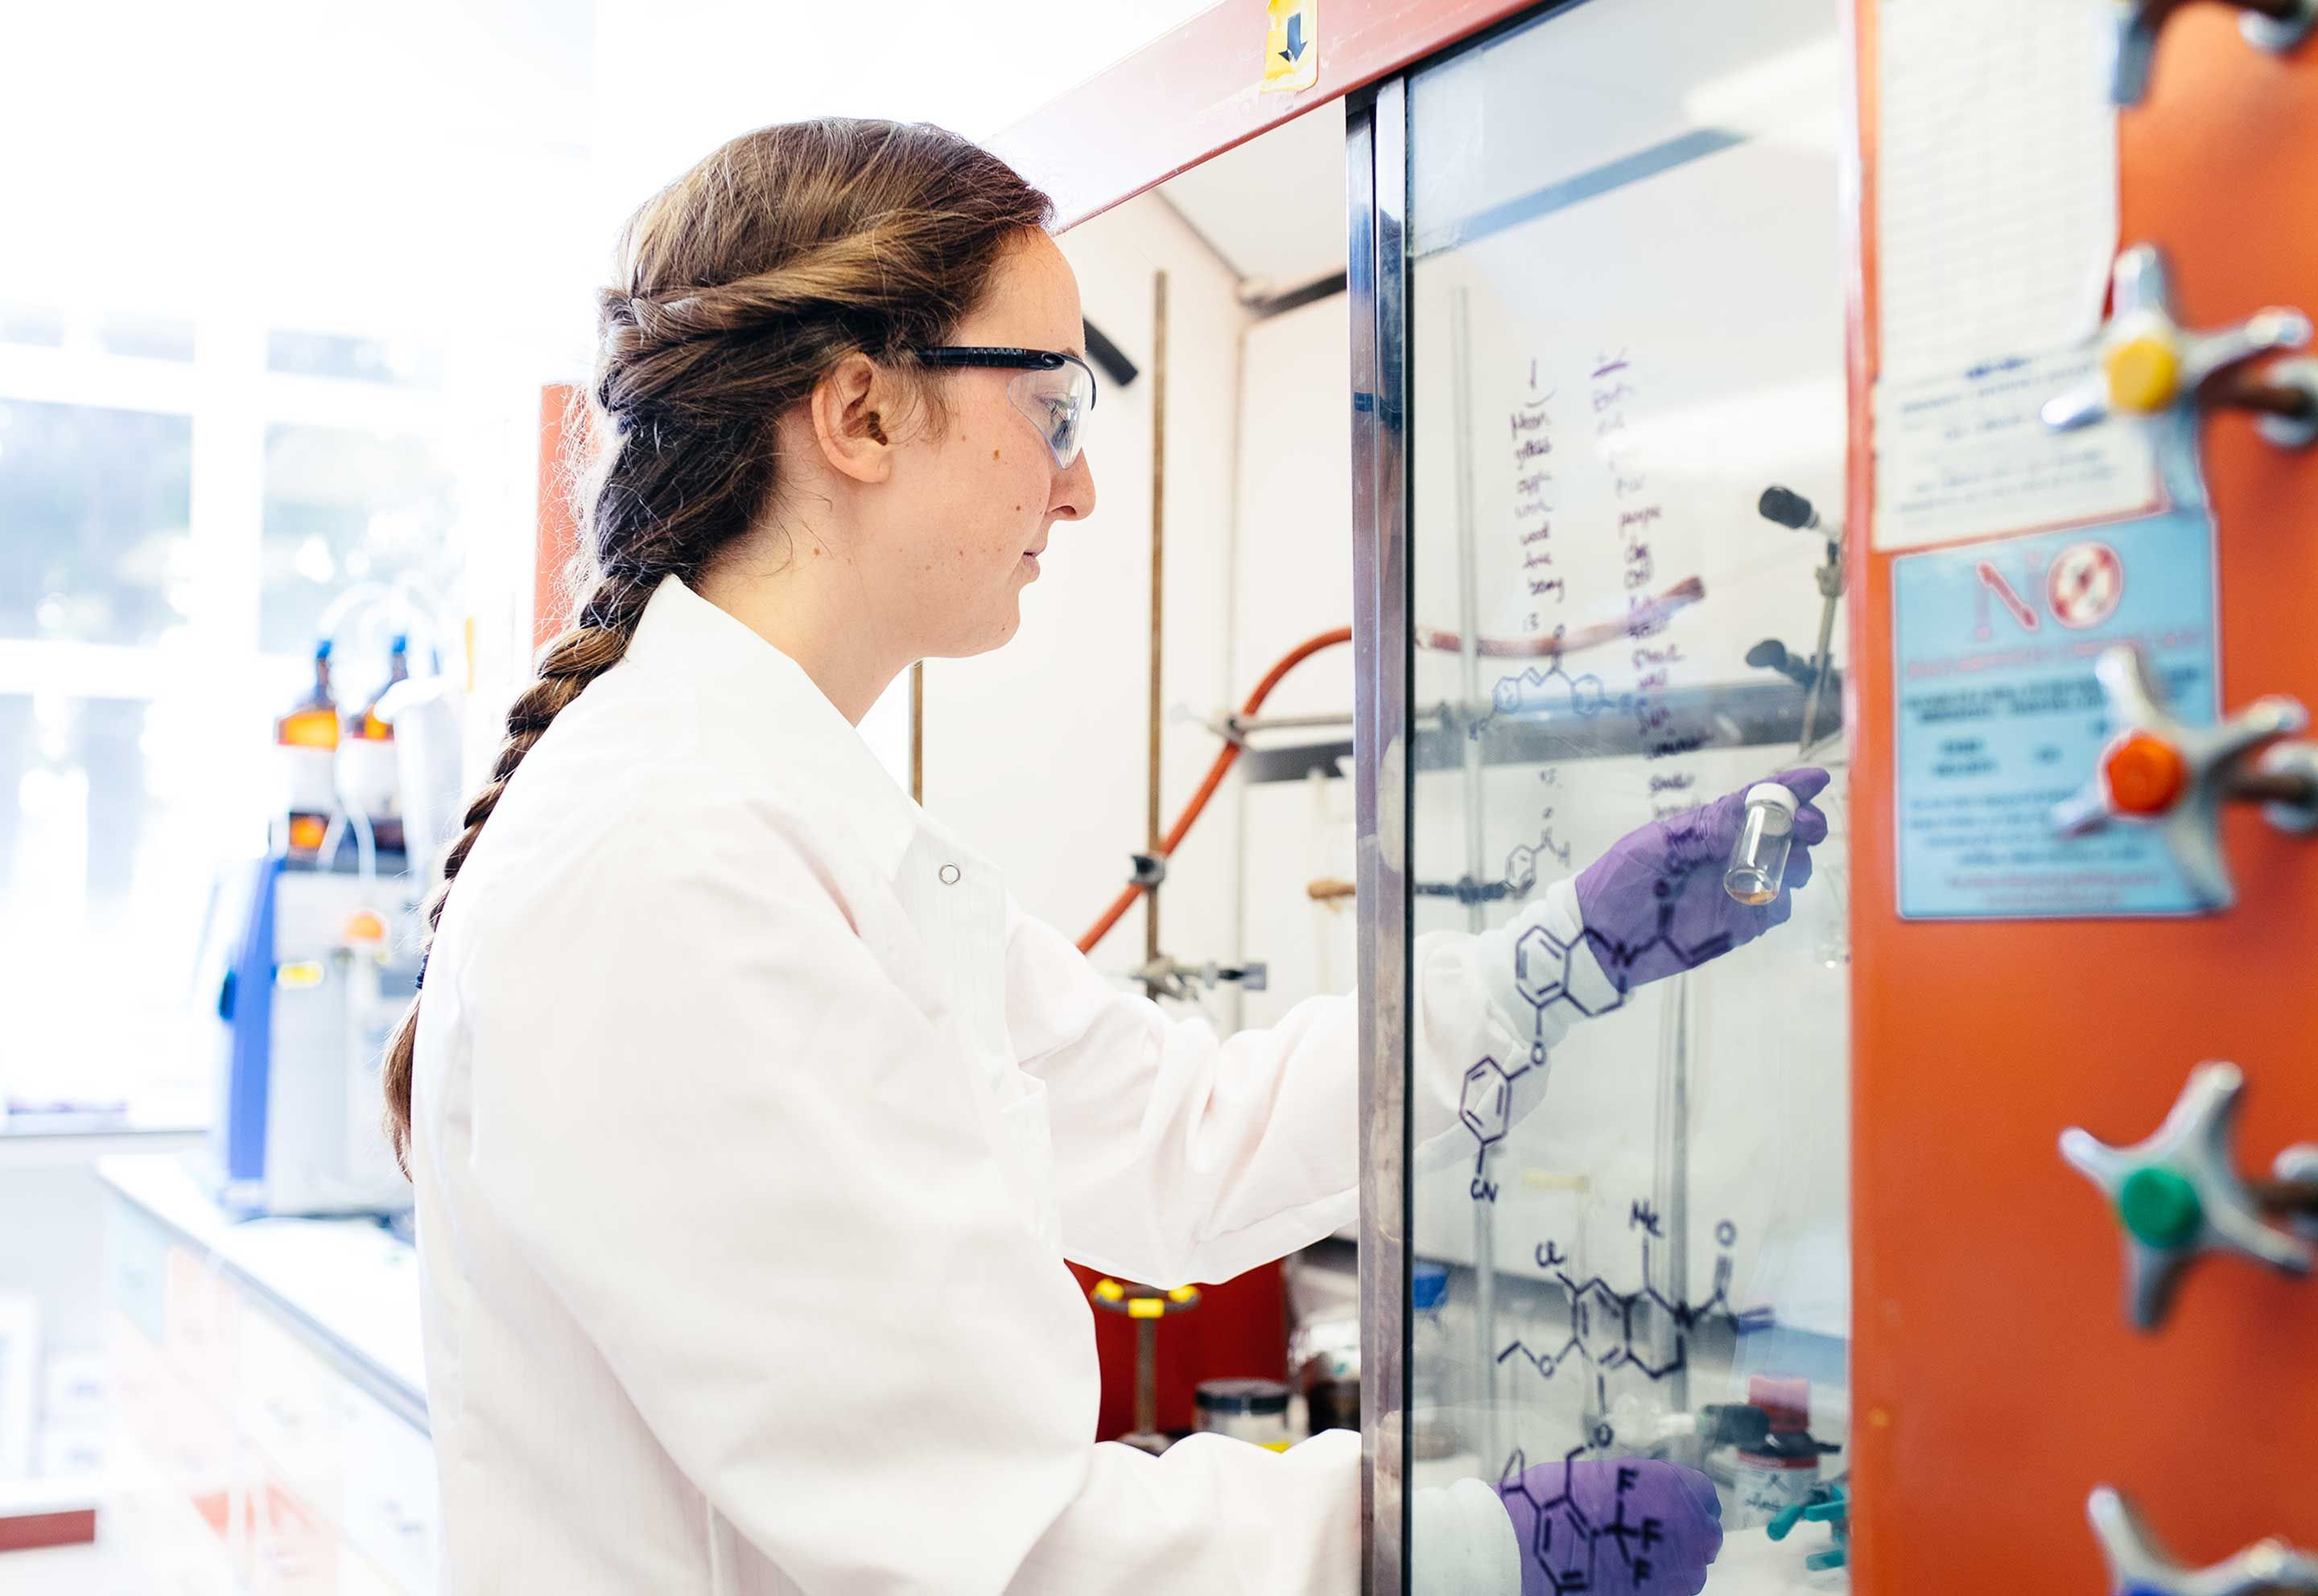 A researcher in a lab holding a test tube